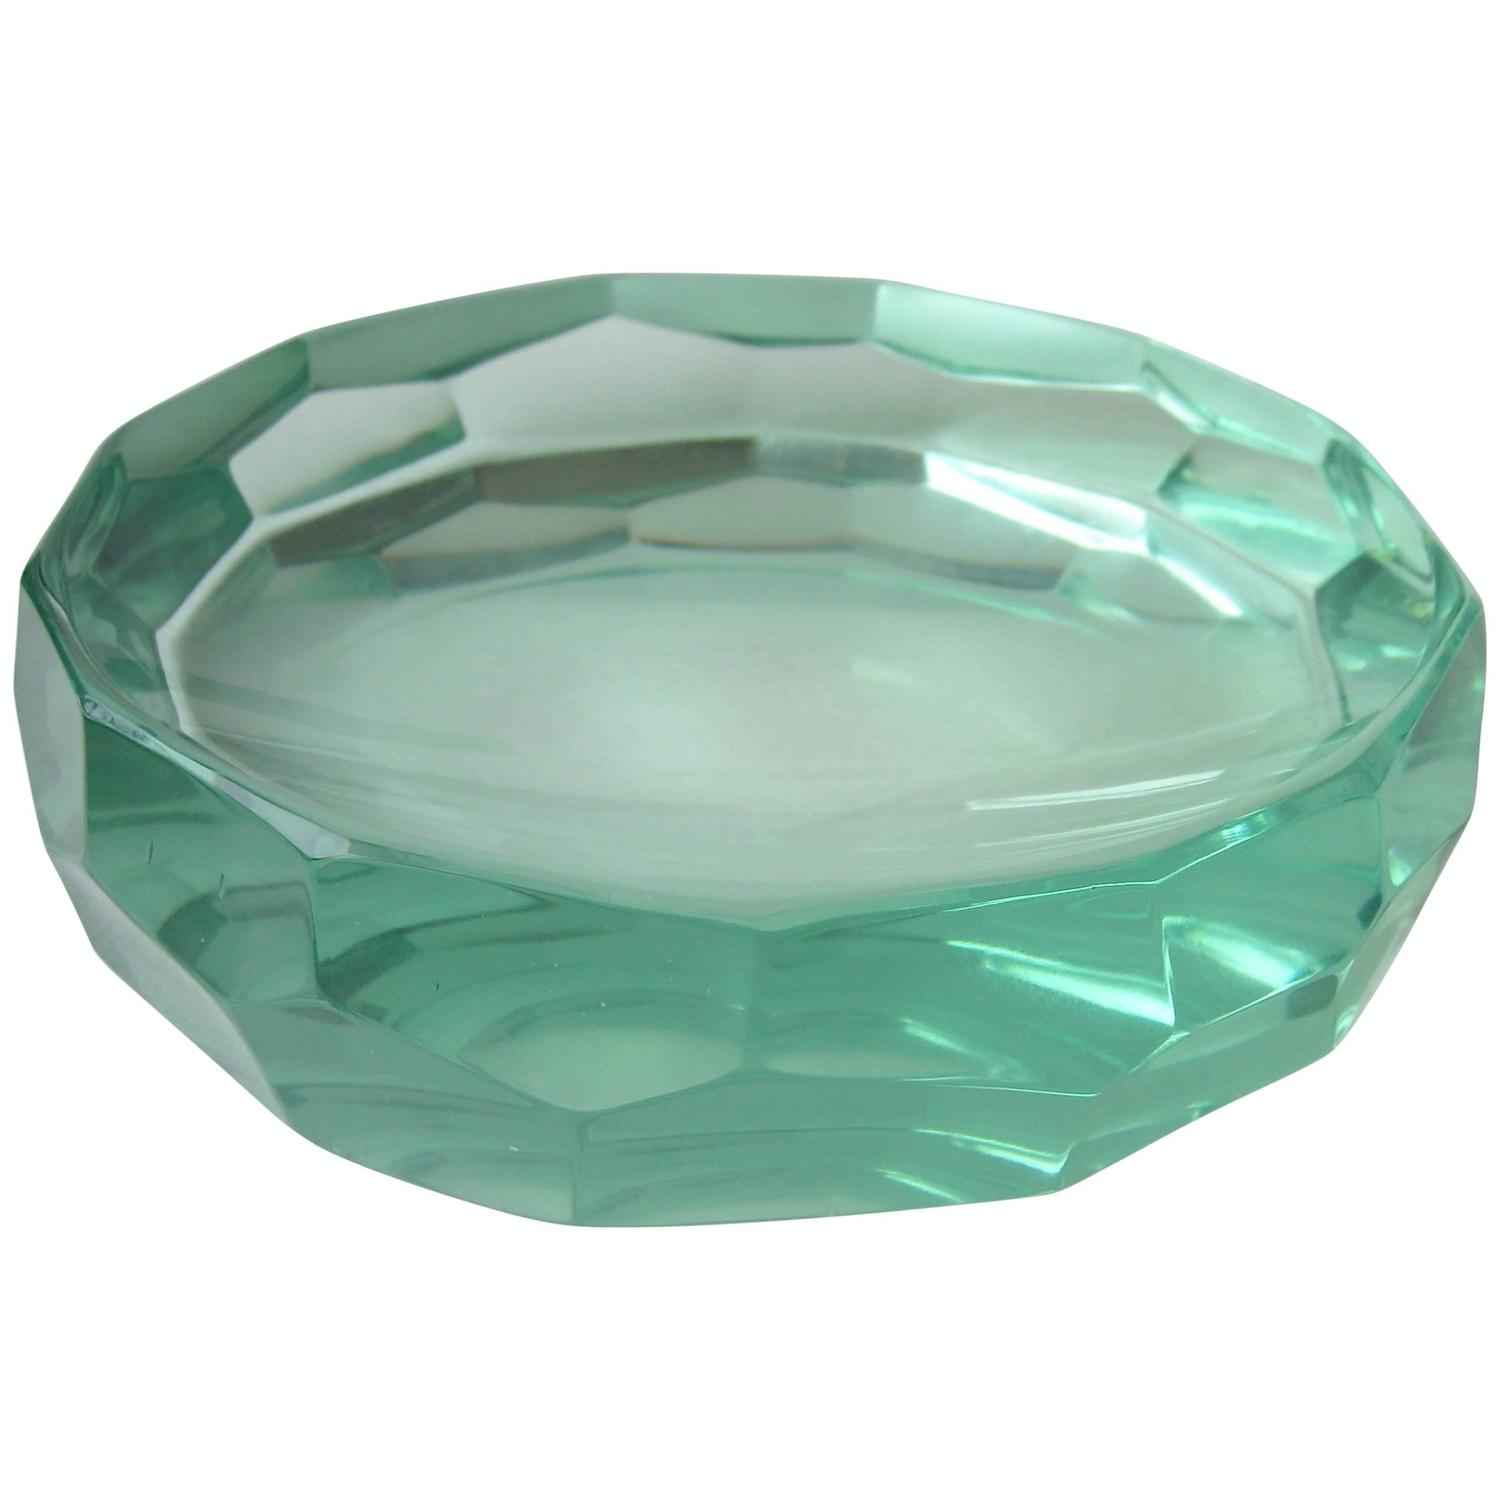 erwin walter burger faceted small glass bowl, fontana arte, signed